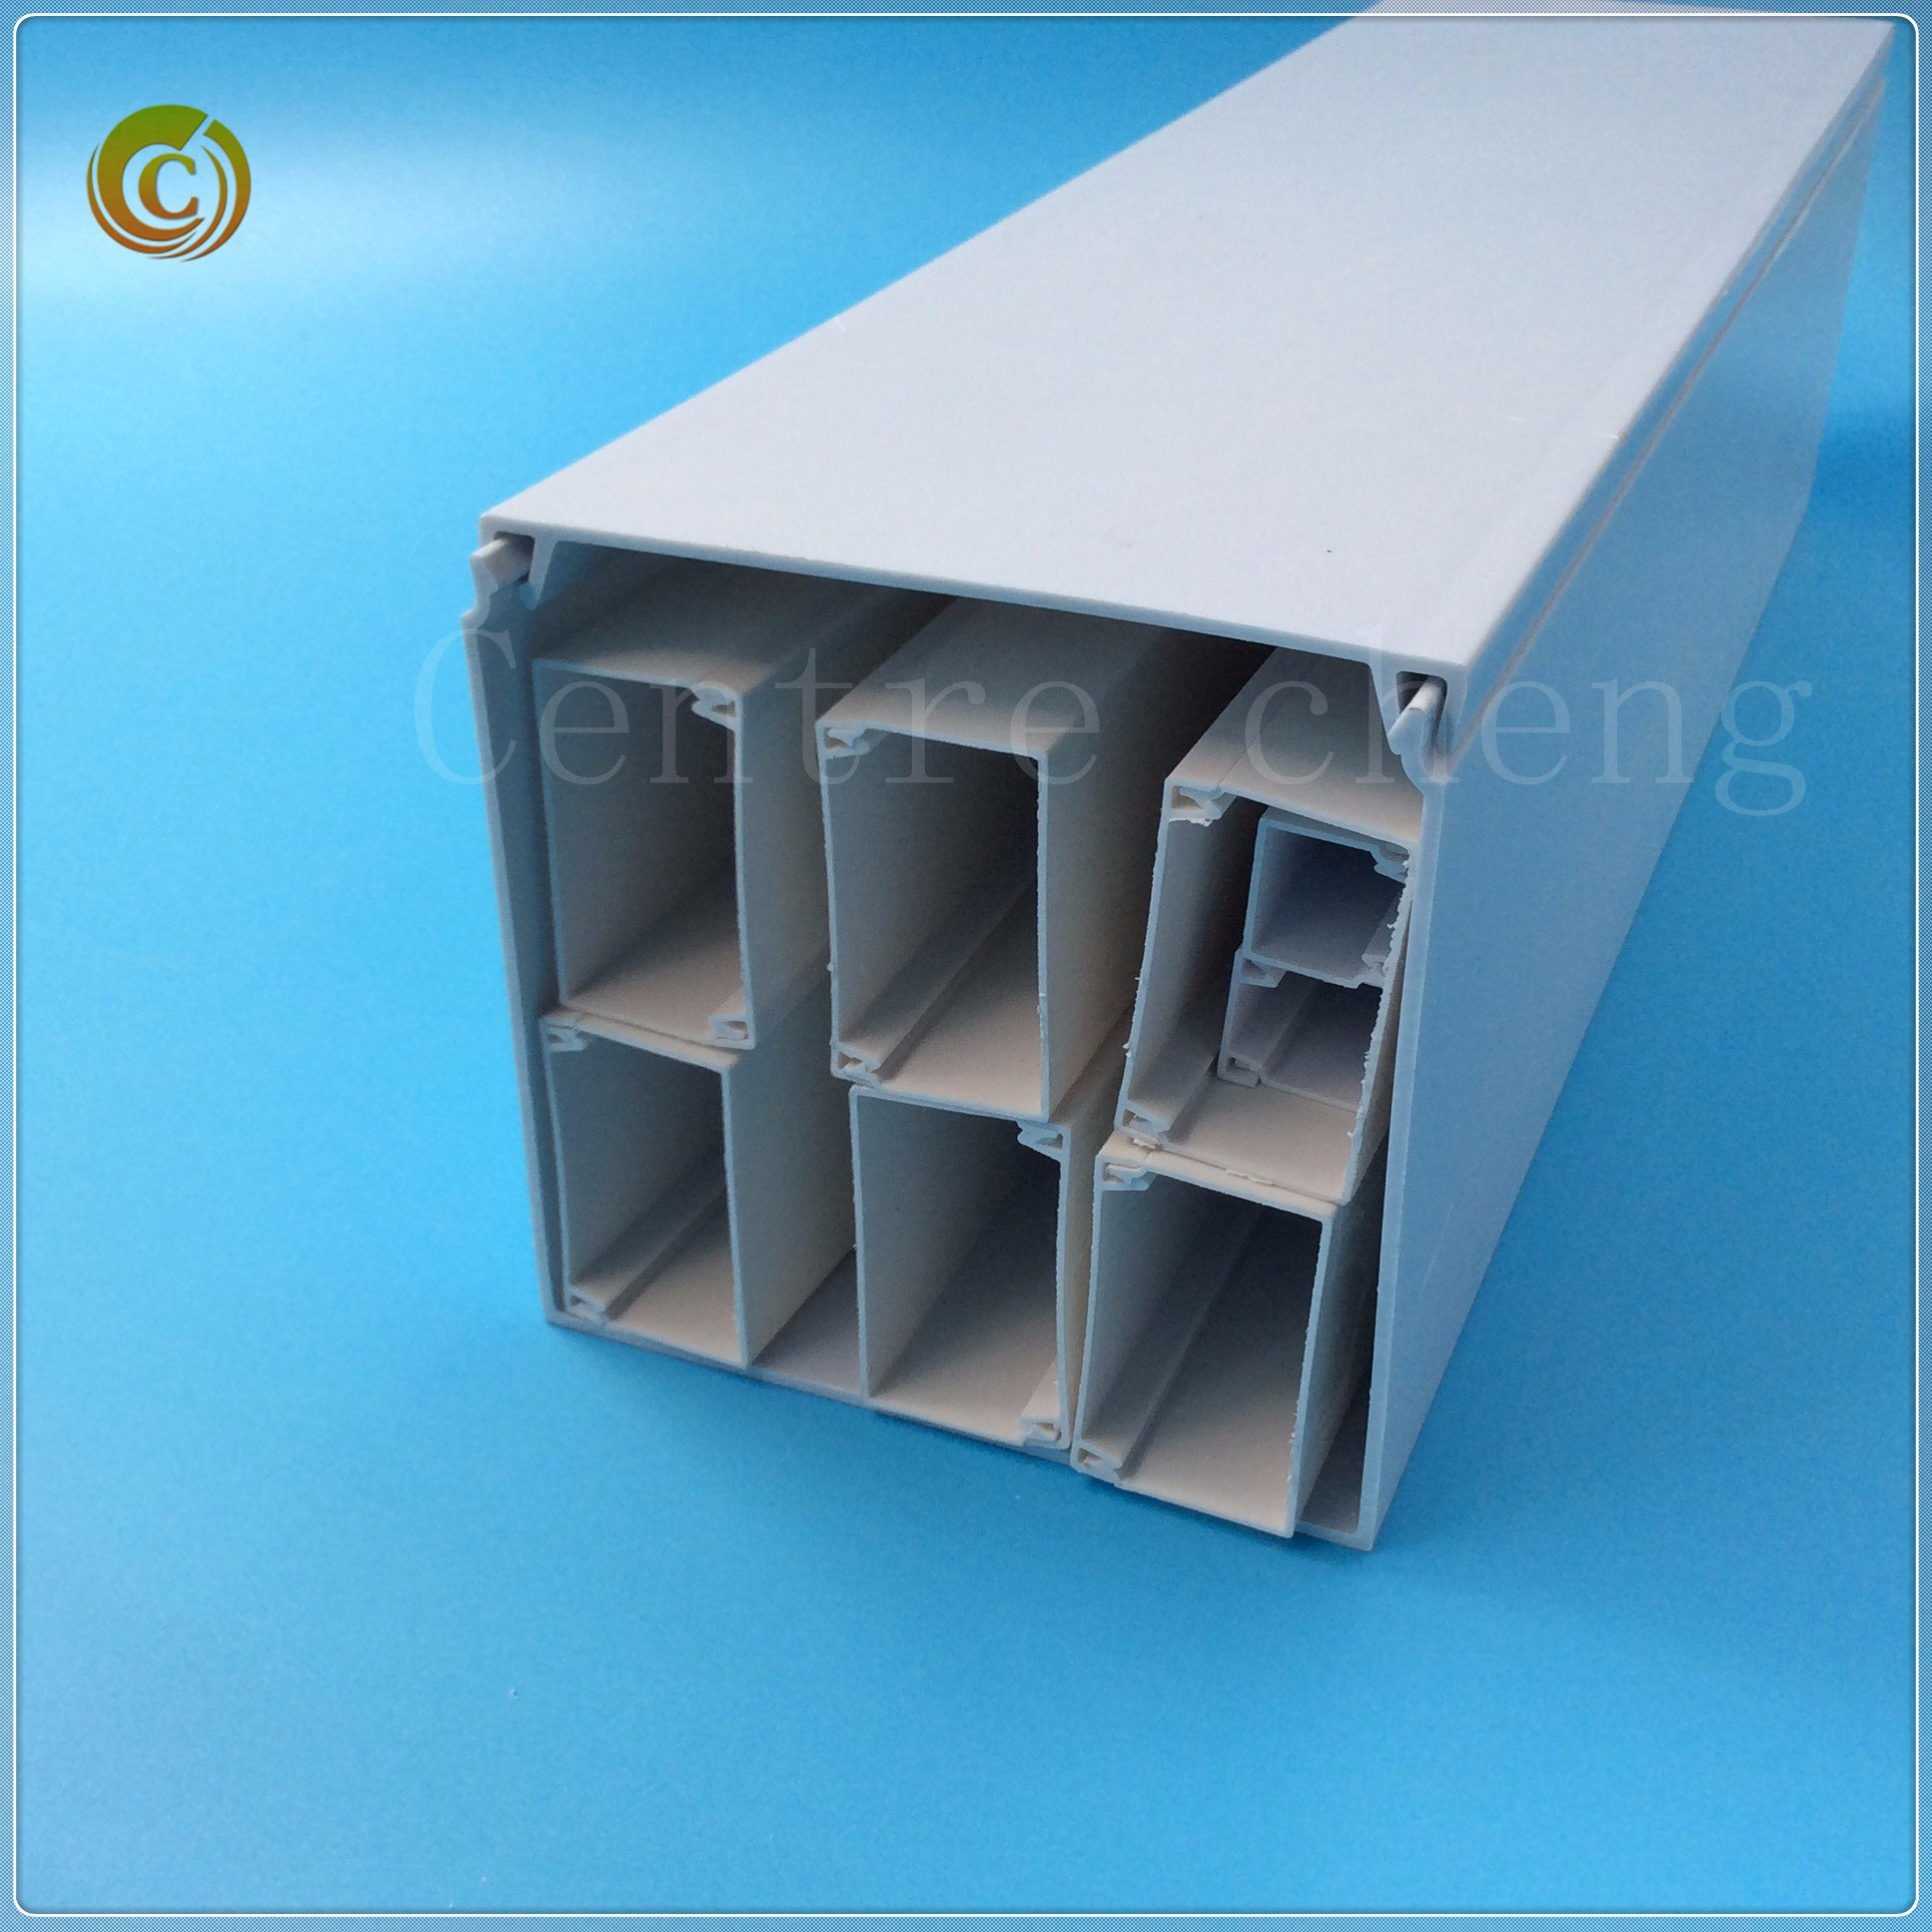 Plastic Wiring Conduit Solutions In 2018 16mmaa Cable Duct Electric Pipe Pvc